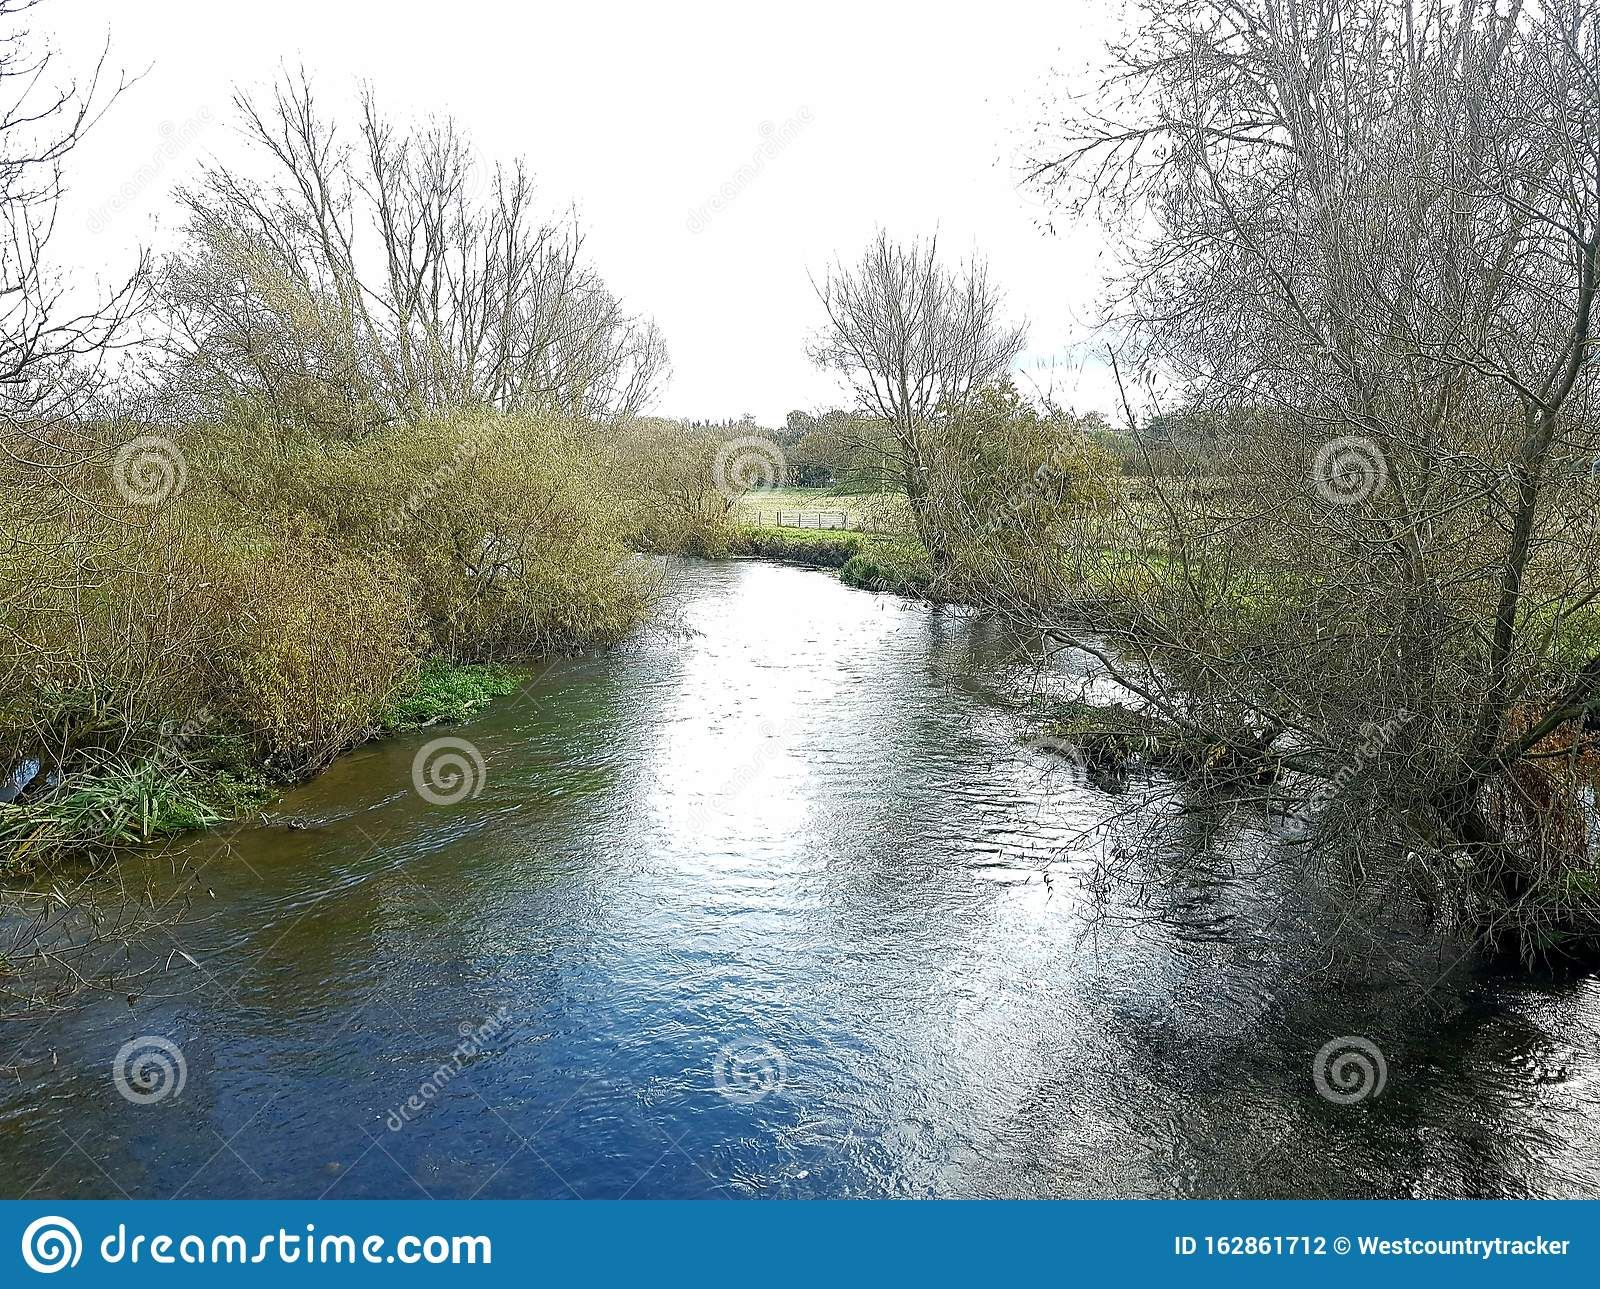 Autumn Scenery Of The River Avon , Amesbury, Wiltshire, Uk Stock Photo - Image of riverwalks, naturewatching: 162861712 #autumnscenery